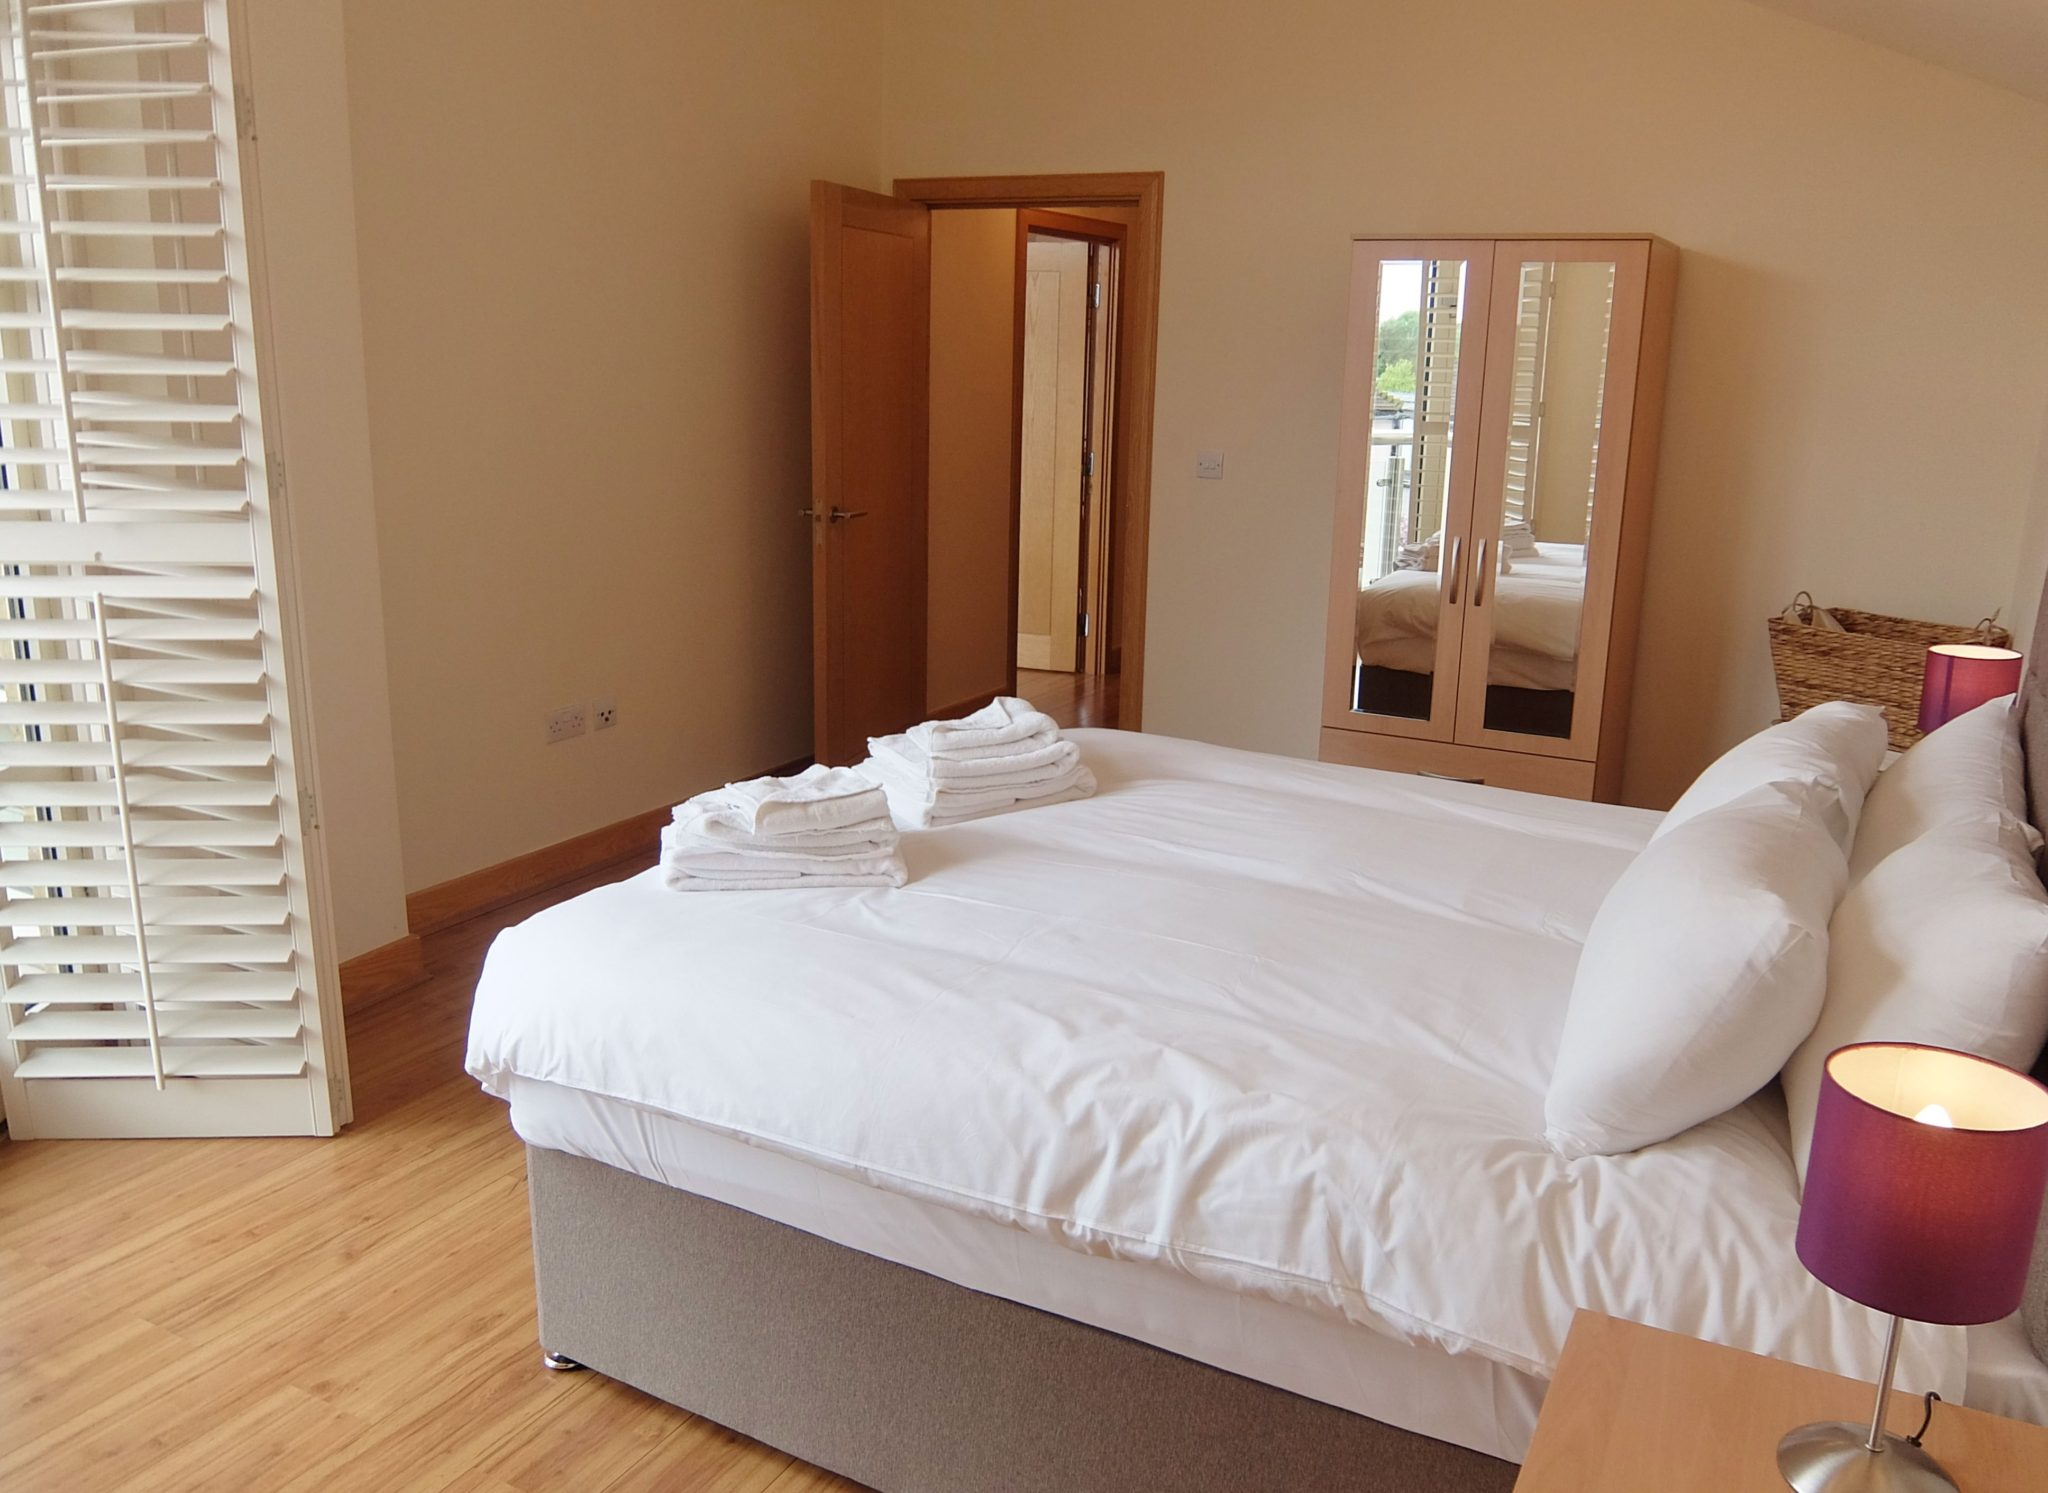 Looking-for-affordable-accommodation-in-Kingston?-why-not-book-our-Kingston-Serviced-Apartments,-Bridge-Road-for-your-stay?-call-today-for-great-rates.